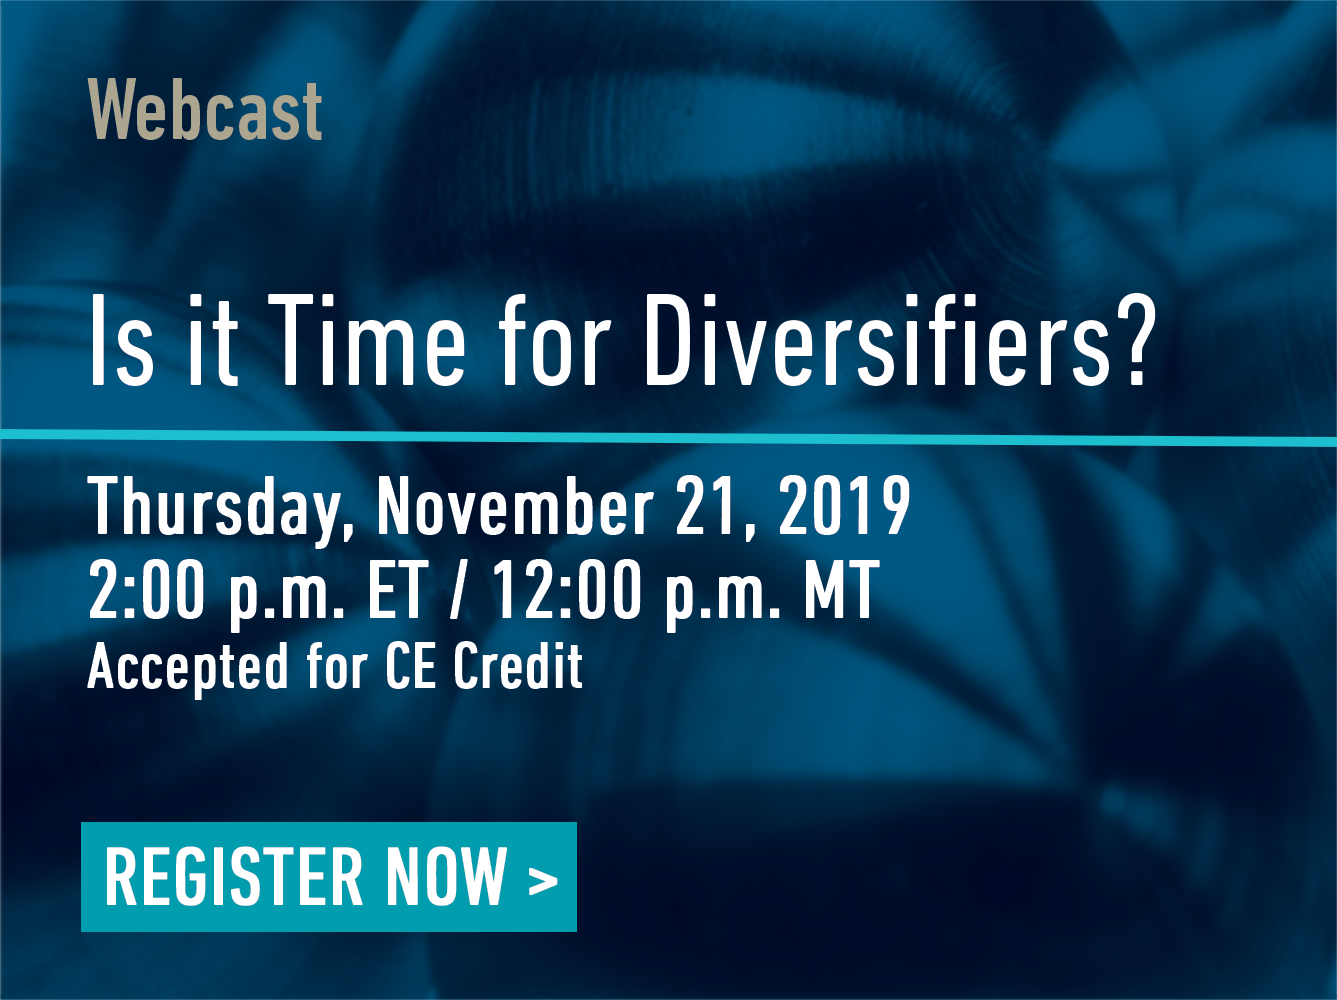 Webcast Promo: Is it Time for Diversifiers?